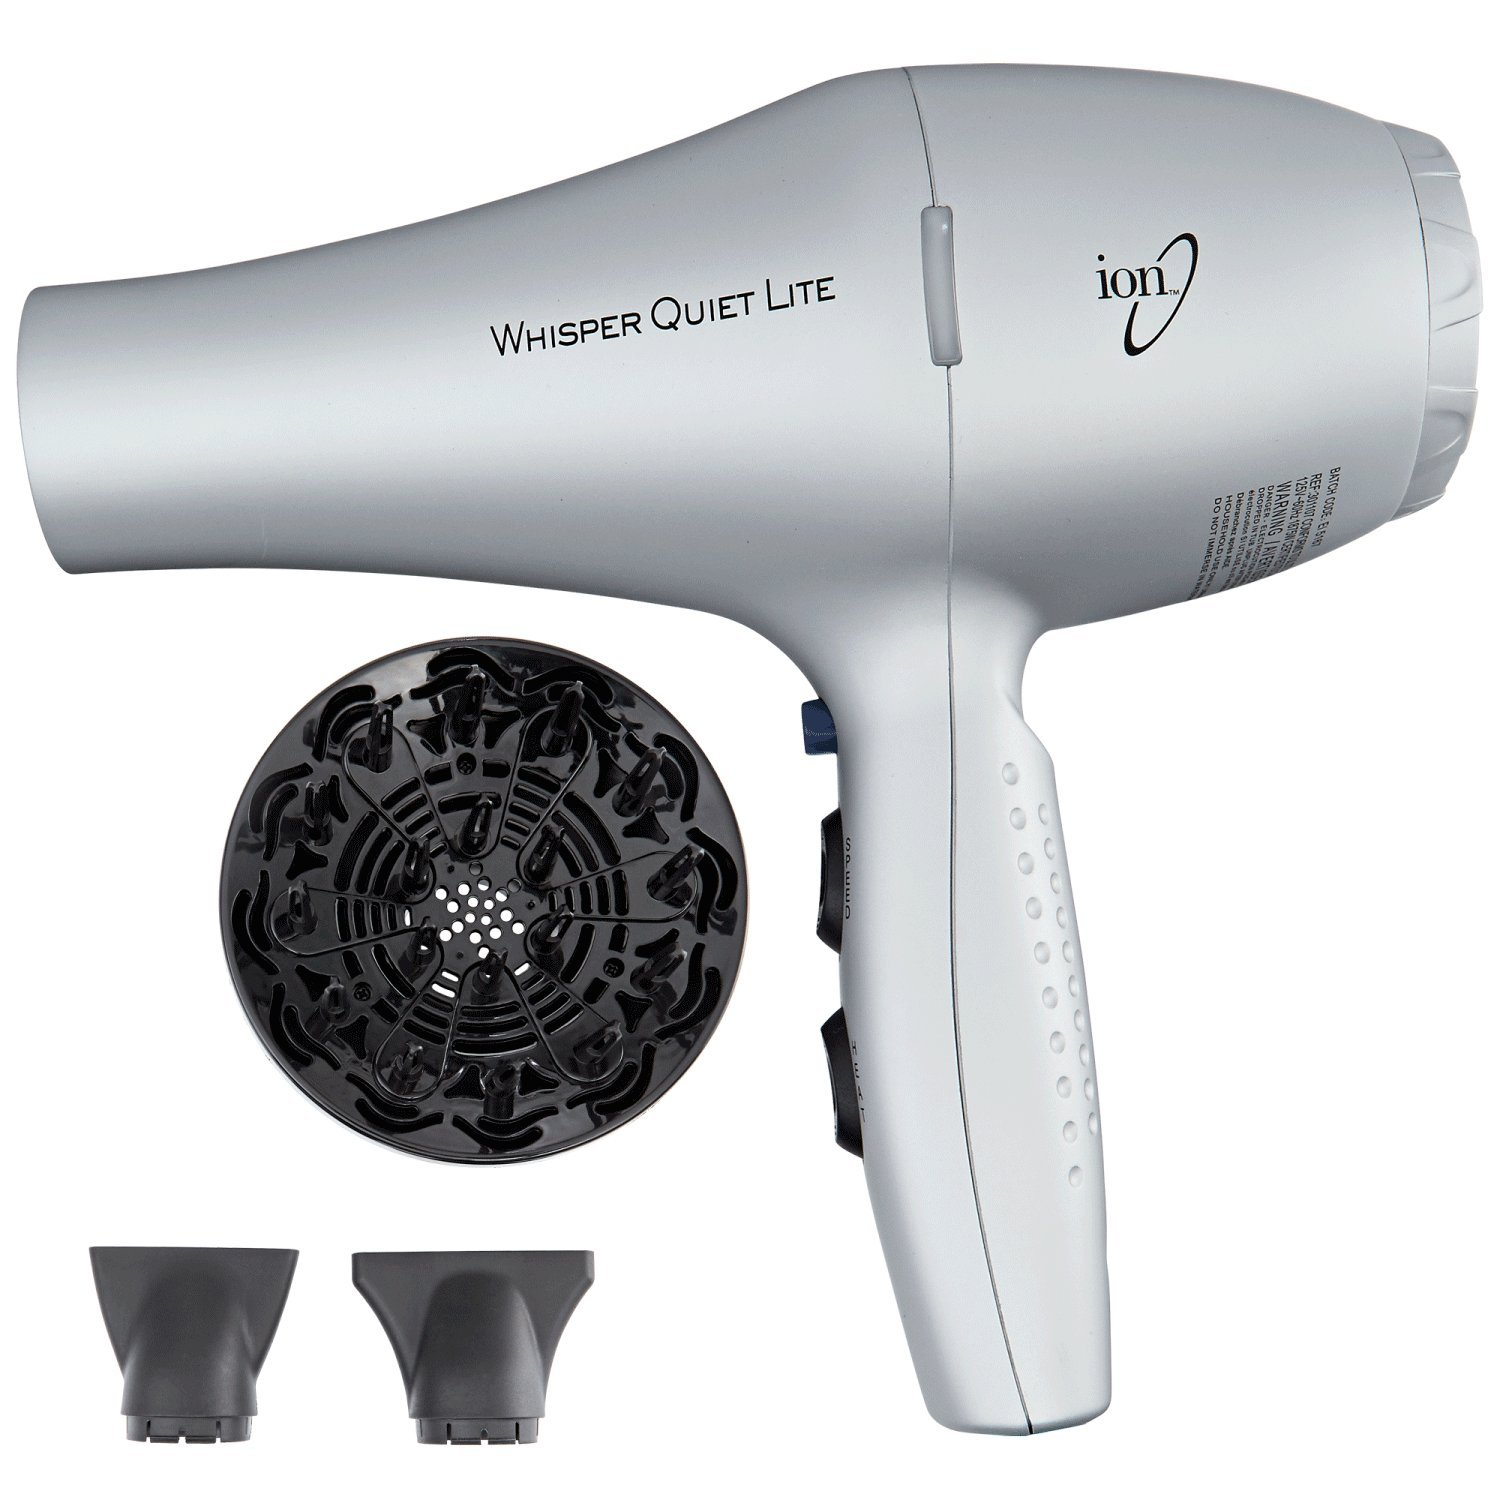 Whisper Quiet Lite 1875W Ionic Dryer by Ion Health and Beauty B00ON1NLEY